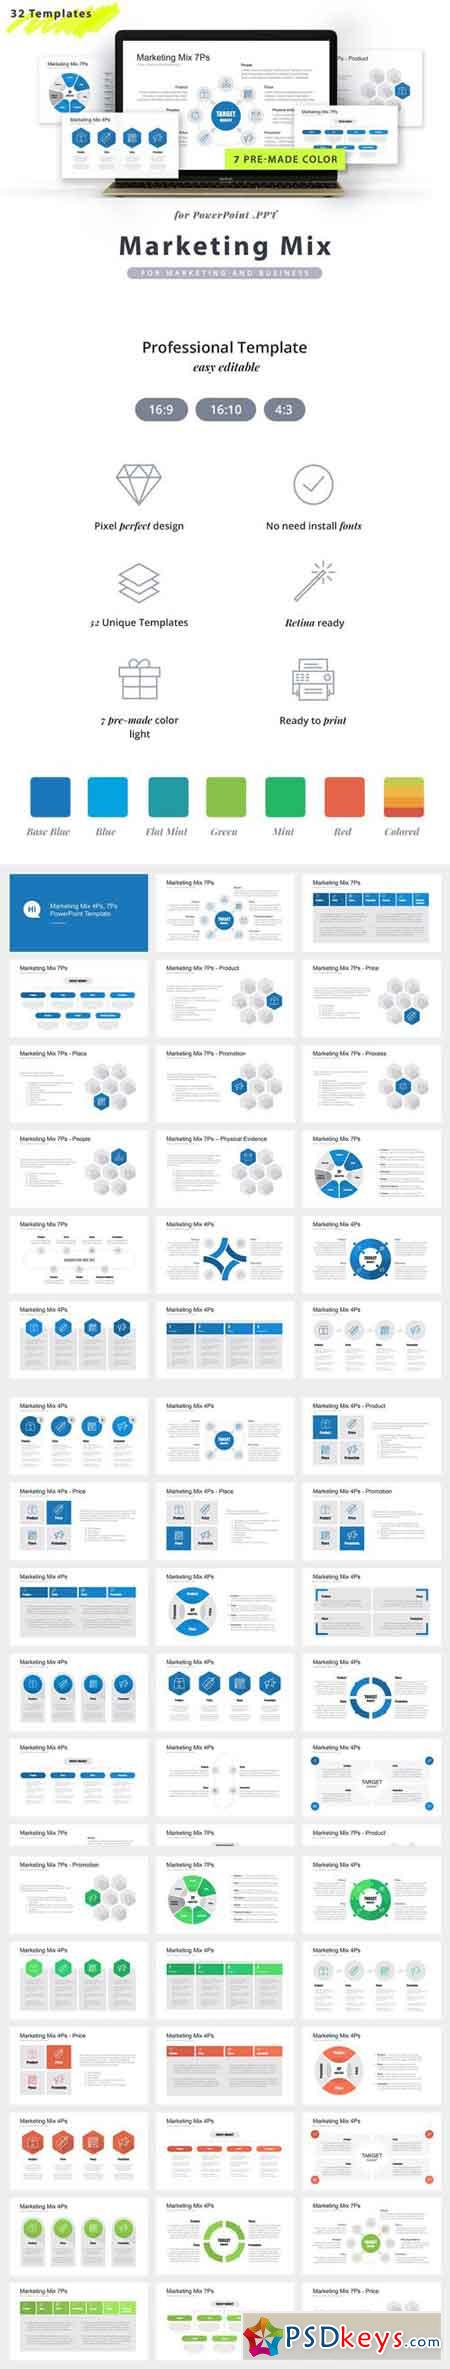 marketing mix powerpoint template » free download photoshop vector, Modern powerpoint